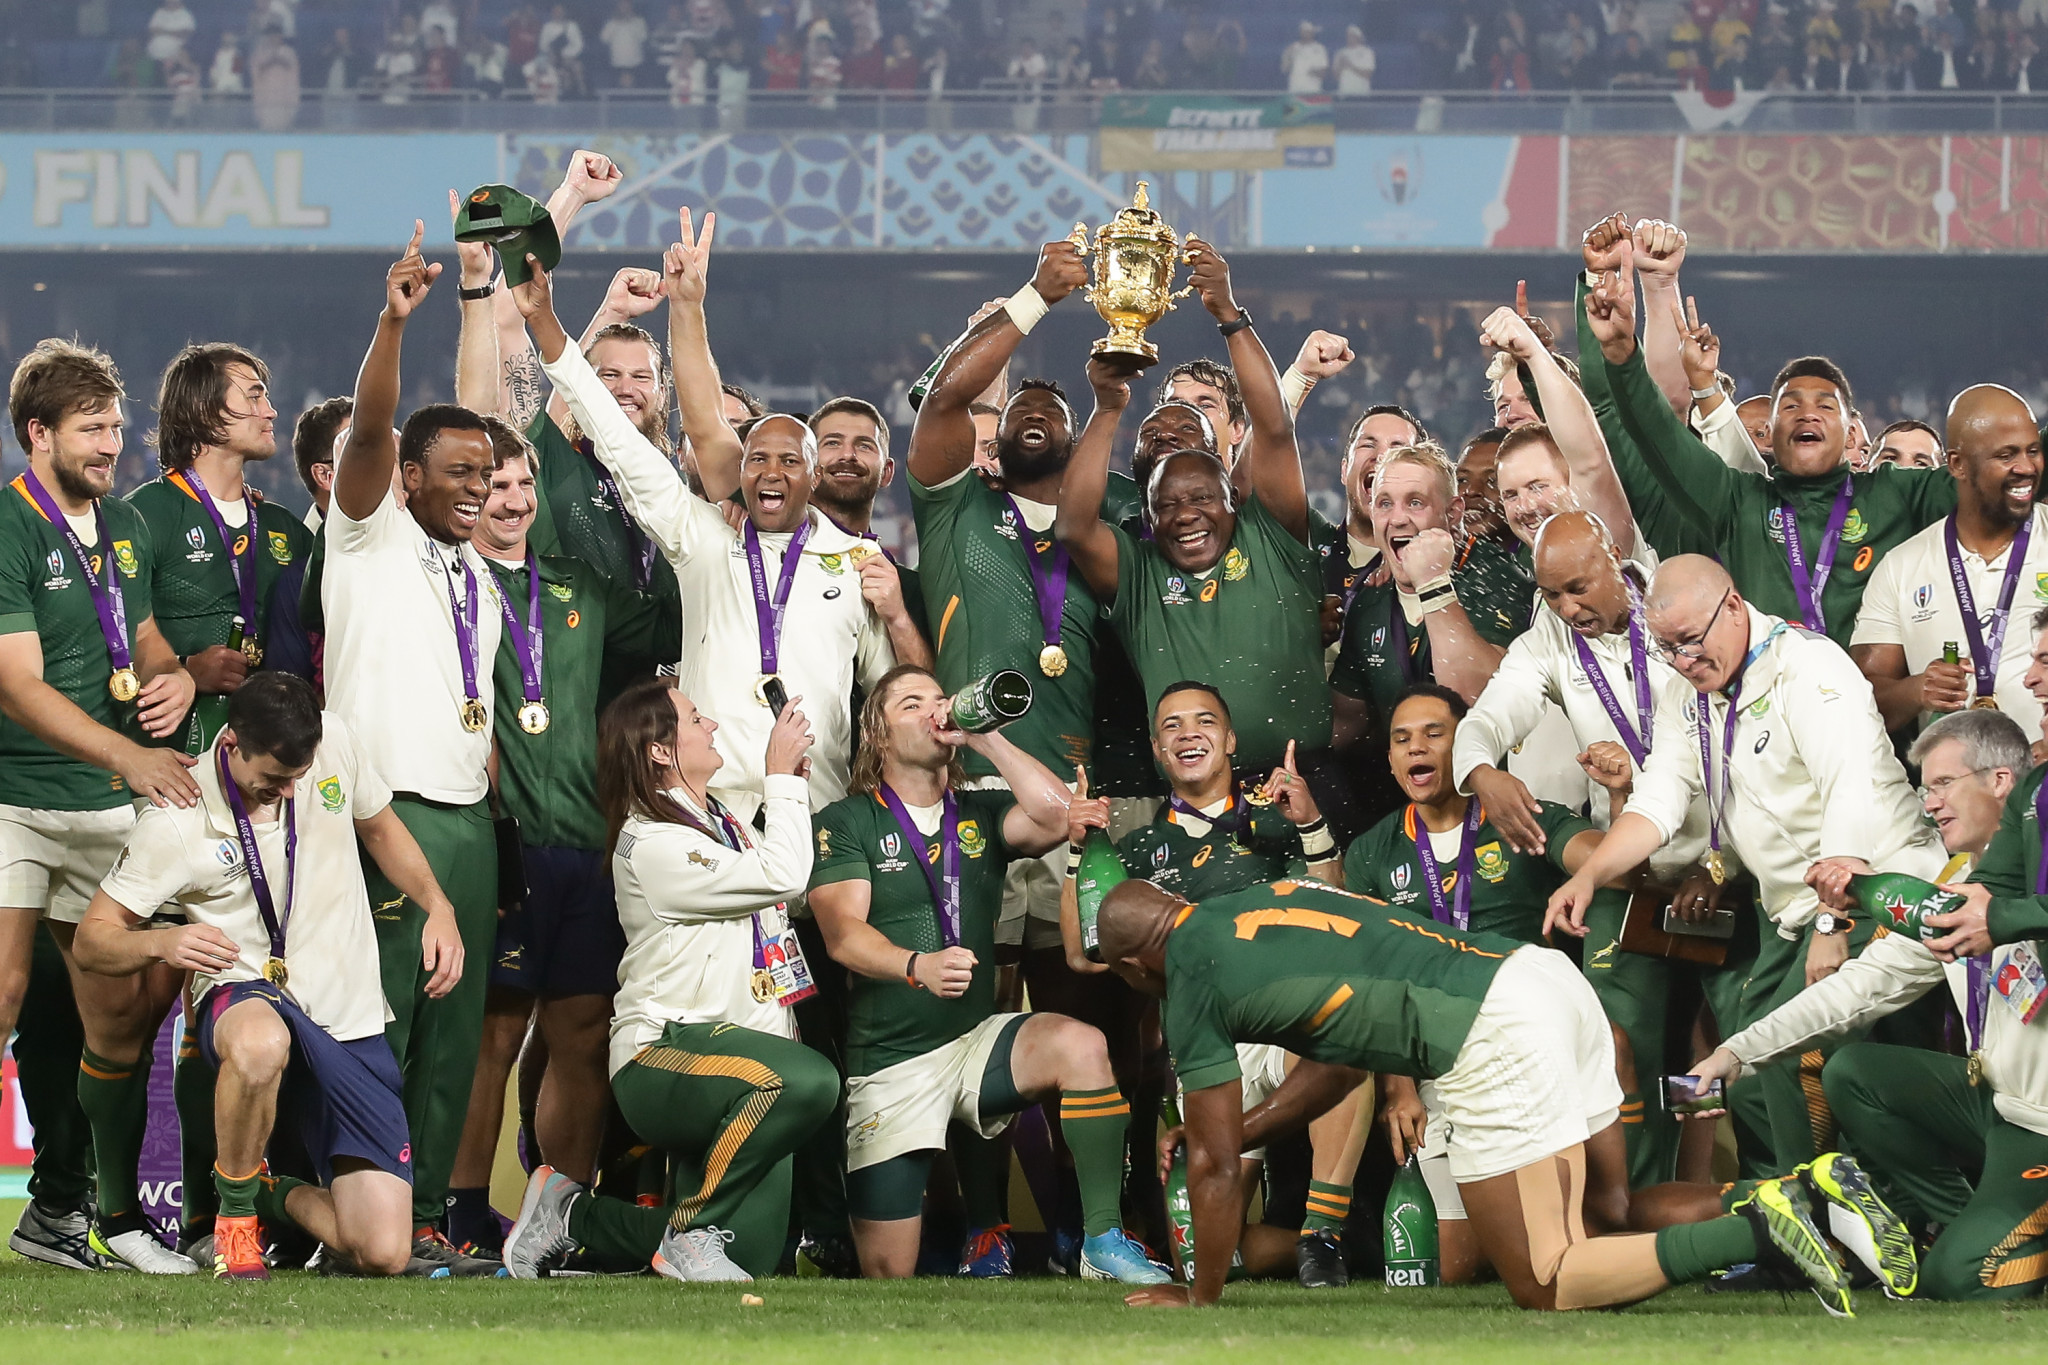 A potential World Rugby deal with a private equity firm could include a commercial stake in the Rugby World Cup ©Getty Images